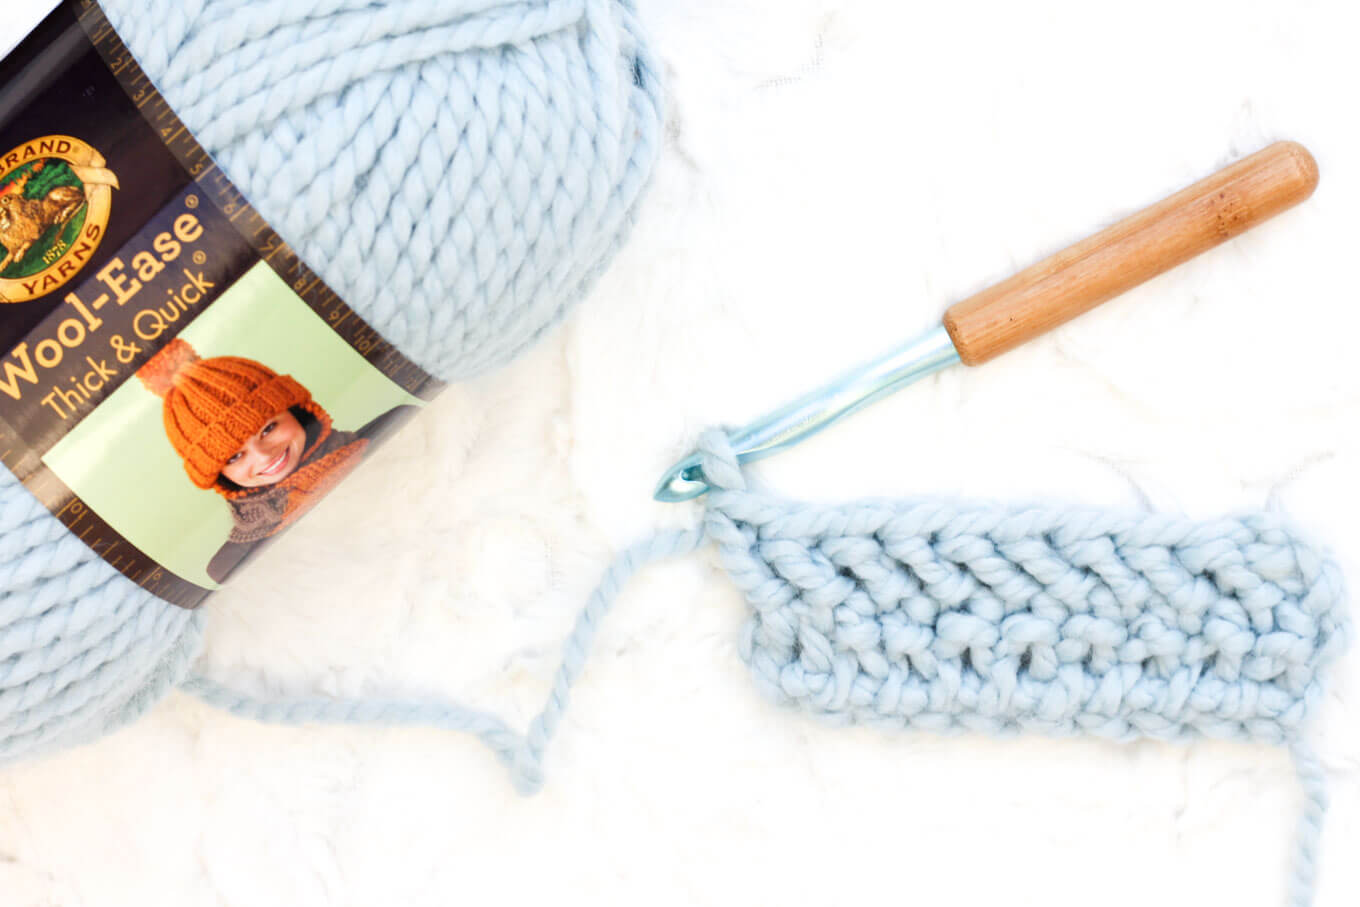 Learn how to crochet the herringbone double crochet stitch in this easy video tutorial. This modern-looking stitch is great for afghans, scarves and striped projects. Because it's based on double crochet, it also worked up really quickly! Lion Brand Thick and Quick pictured.